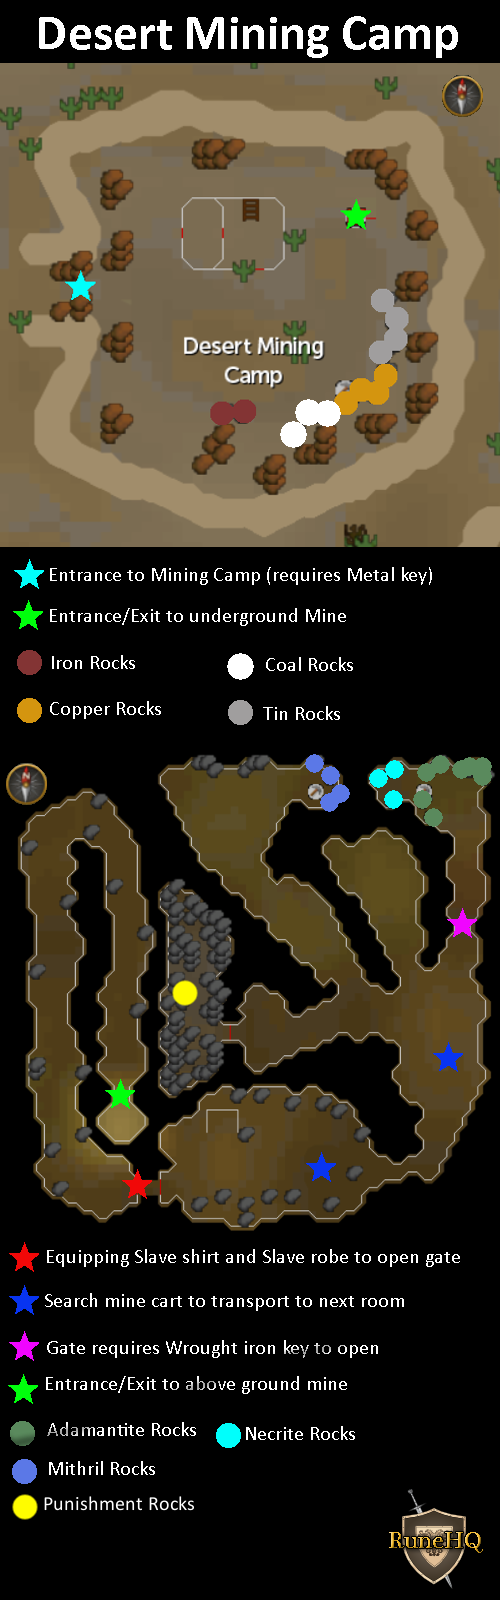 Desert Mining Camp Map